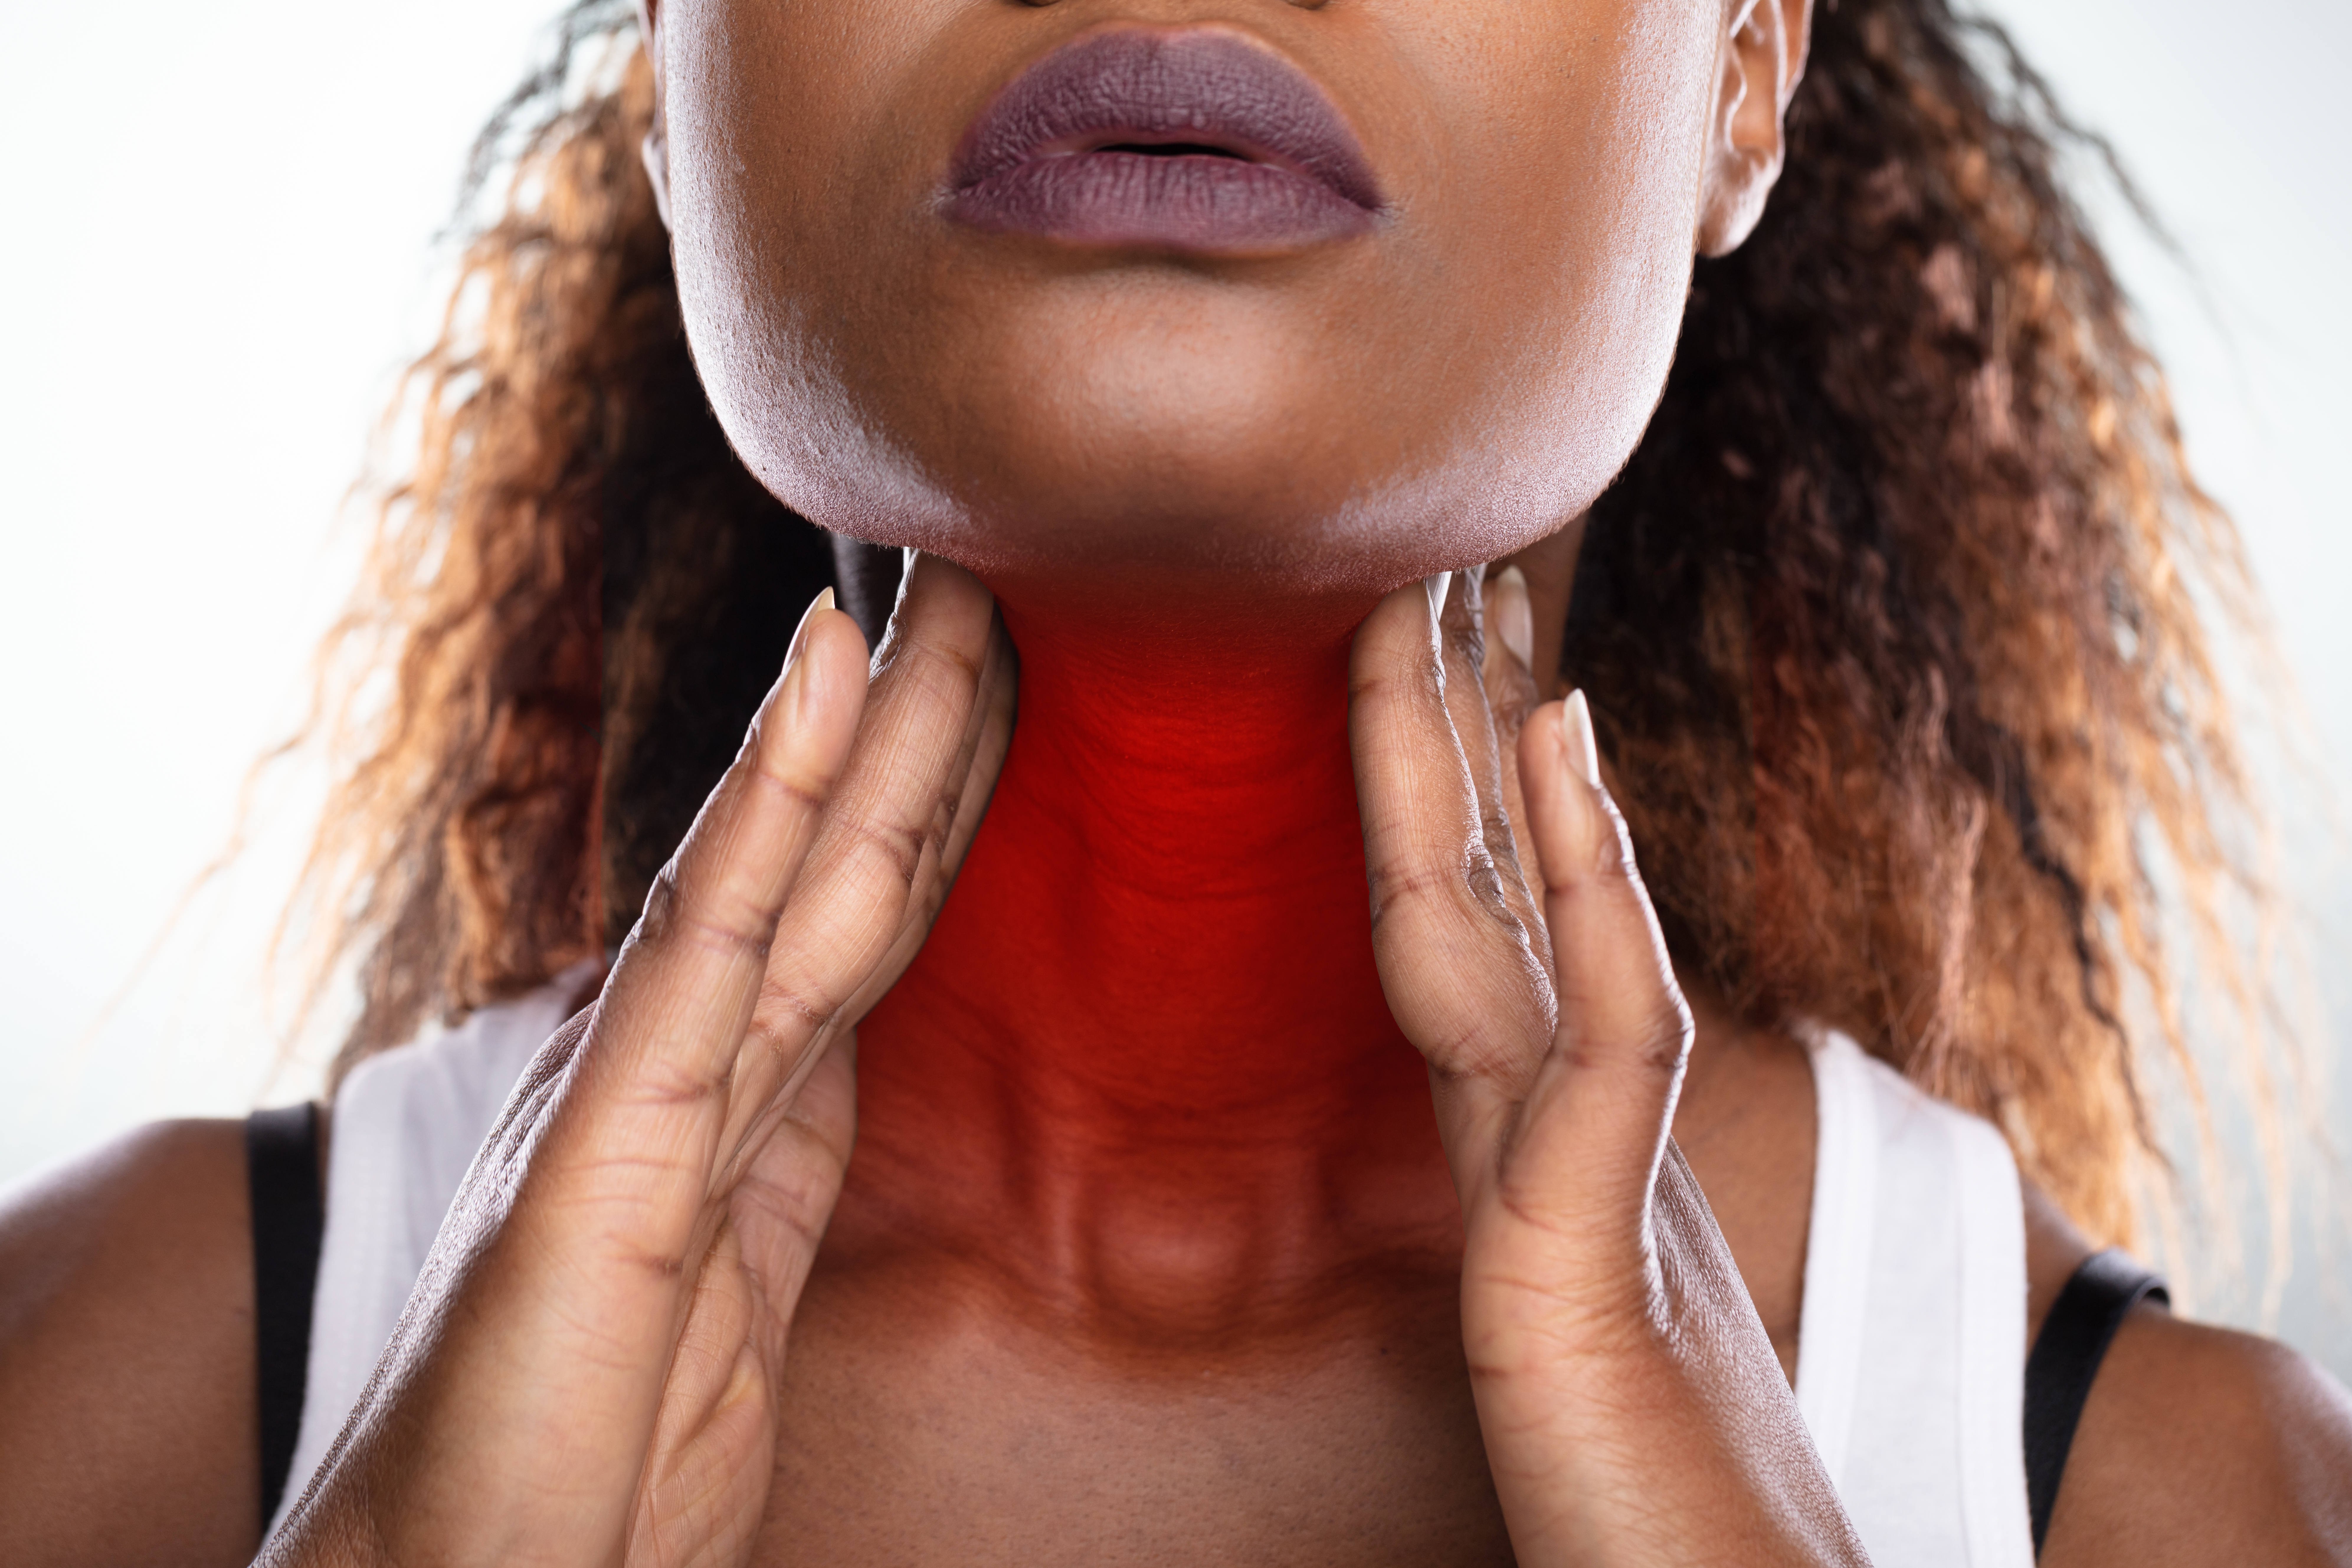 Does Reflux Esophagitis Cause a Sore Throat?